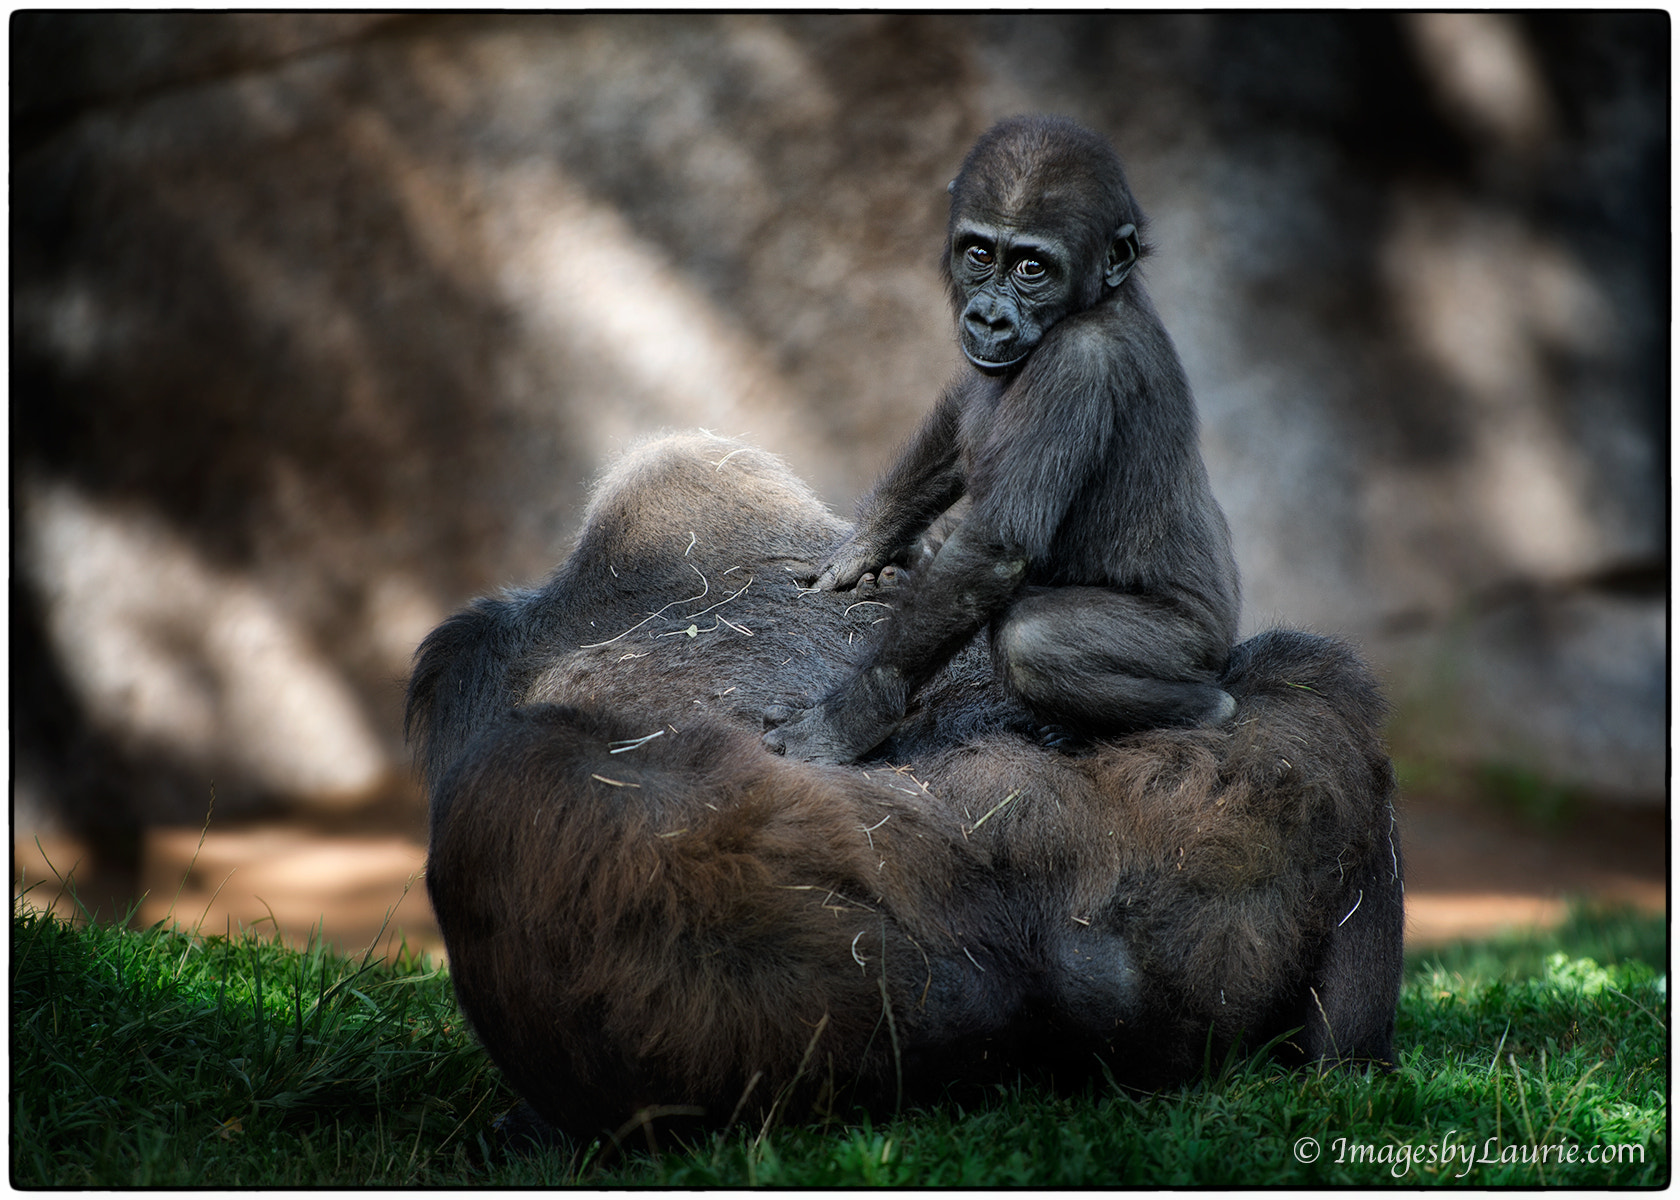 Photograph Gorilla Sofa by Laurie Rubin on 500px